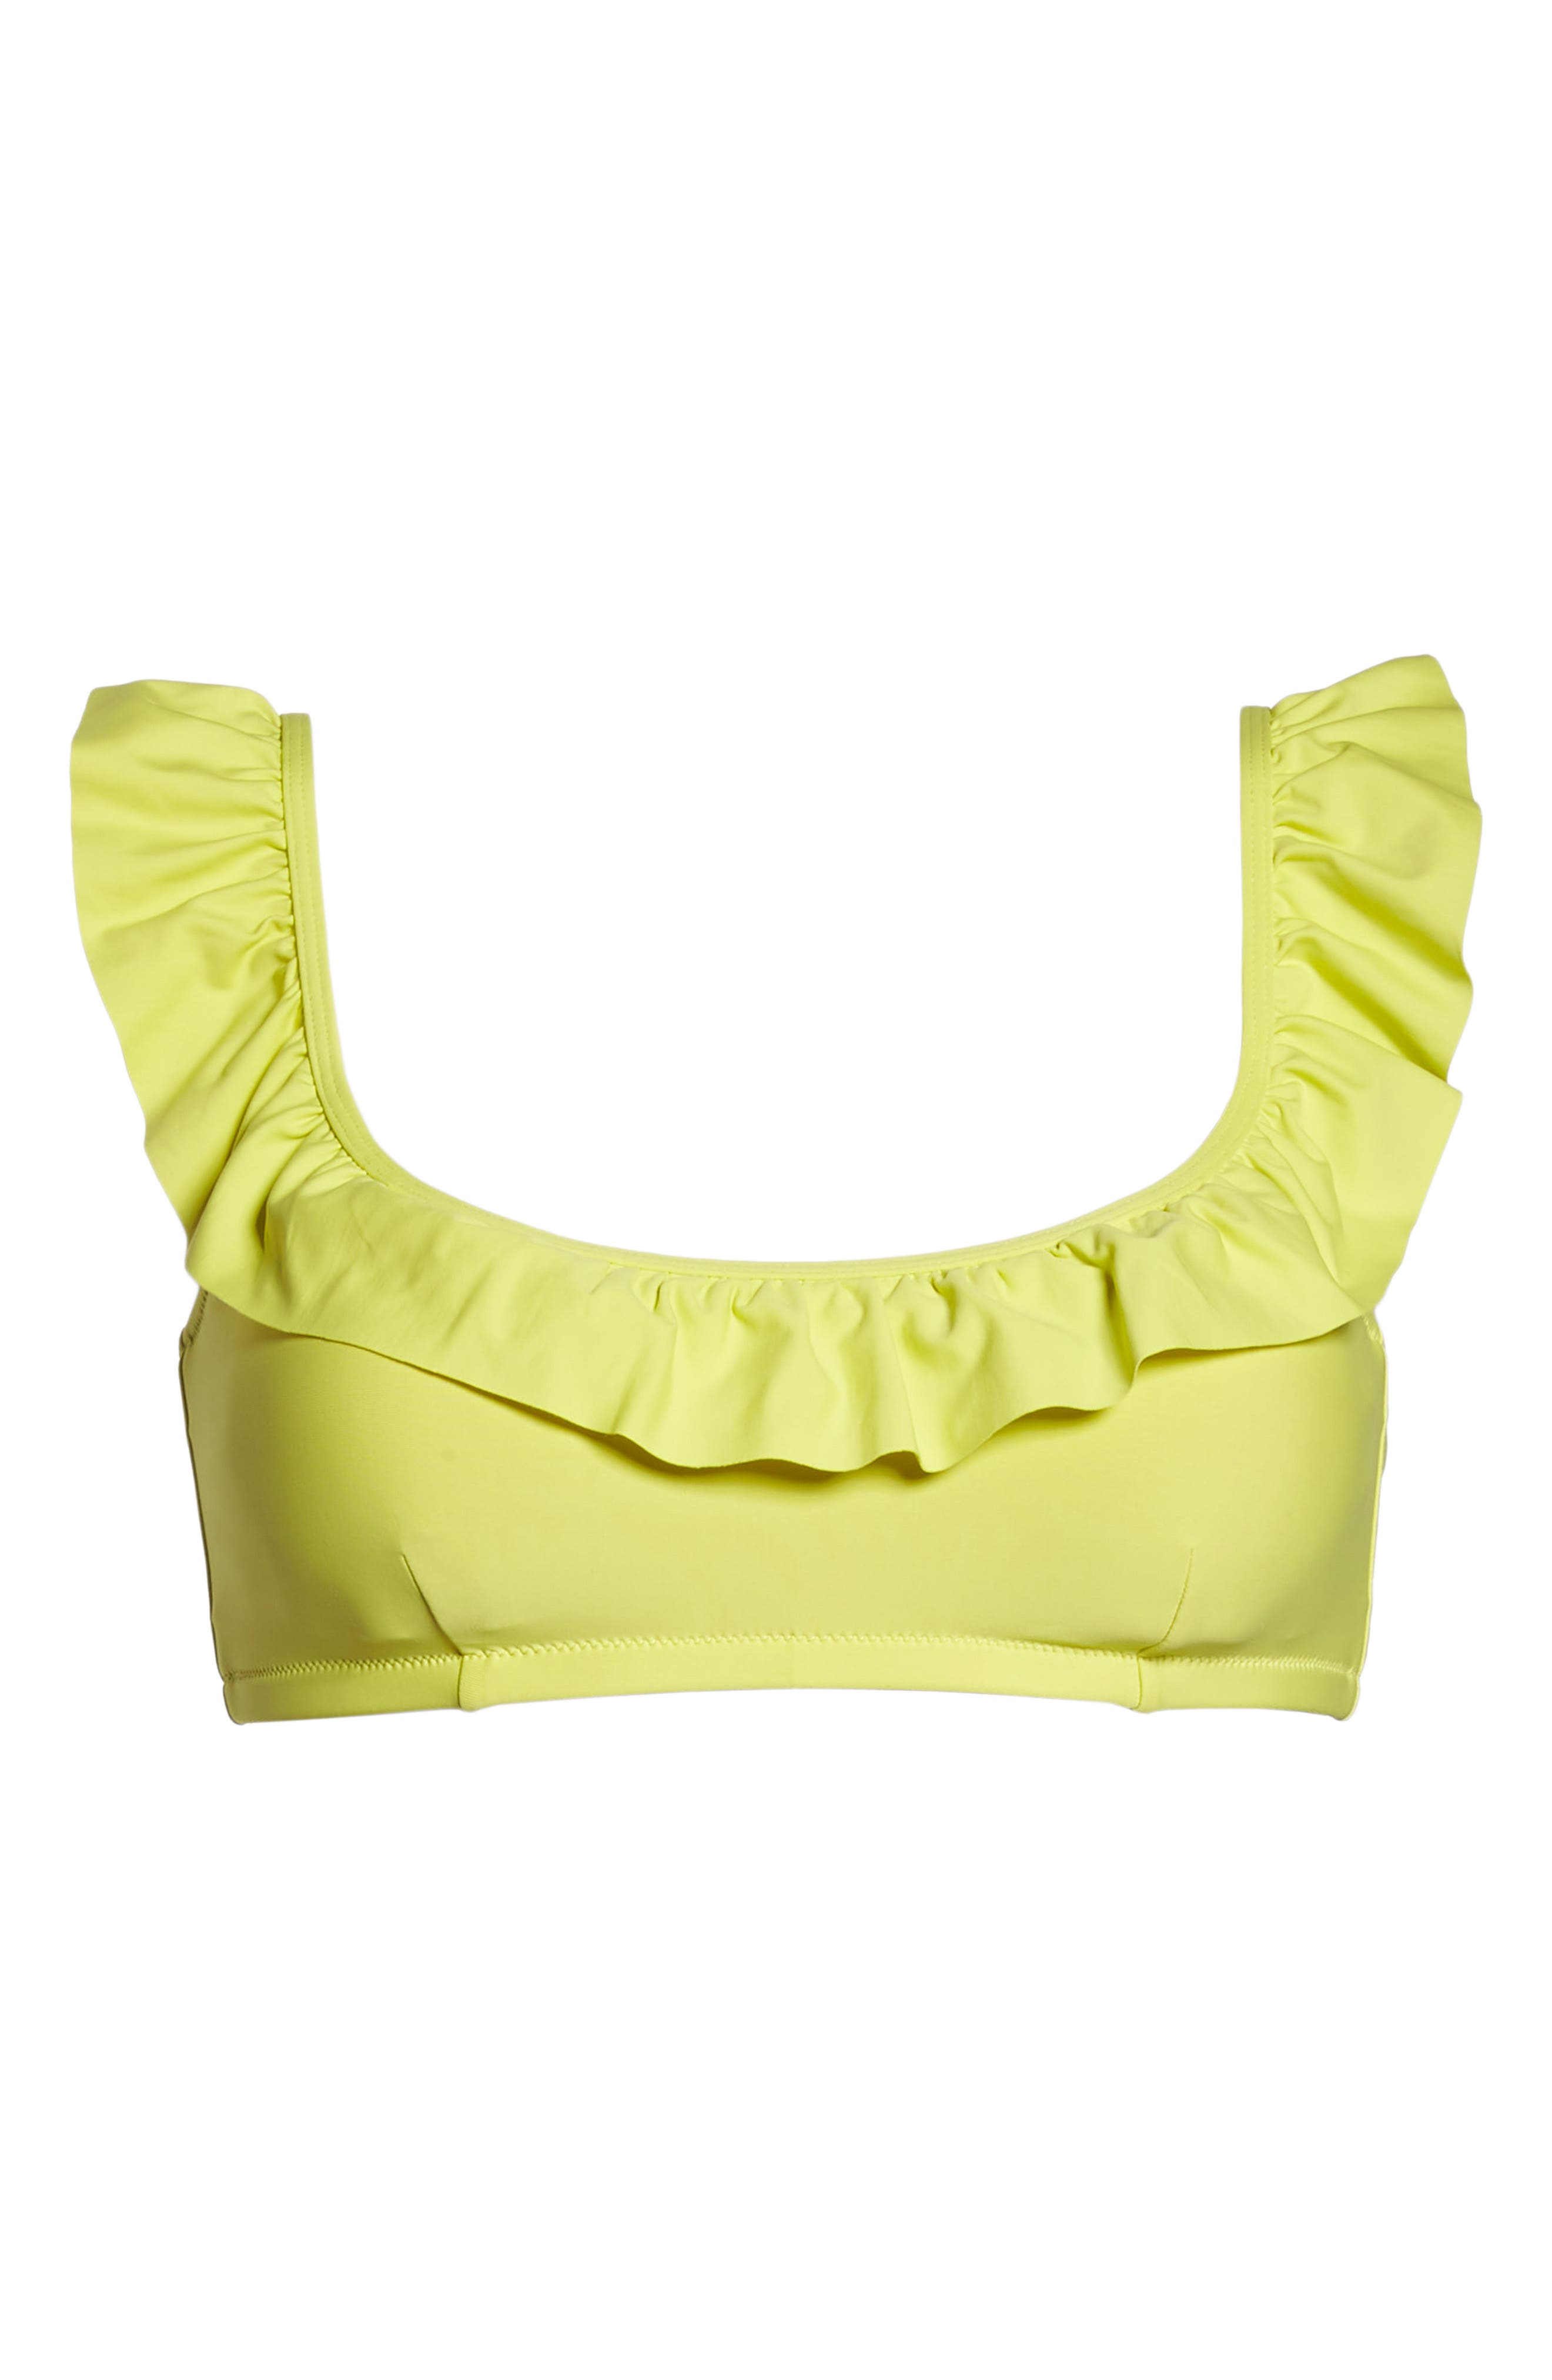 Ruffle Bikini Top,                             Alternate thumbnail 21, color,